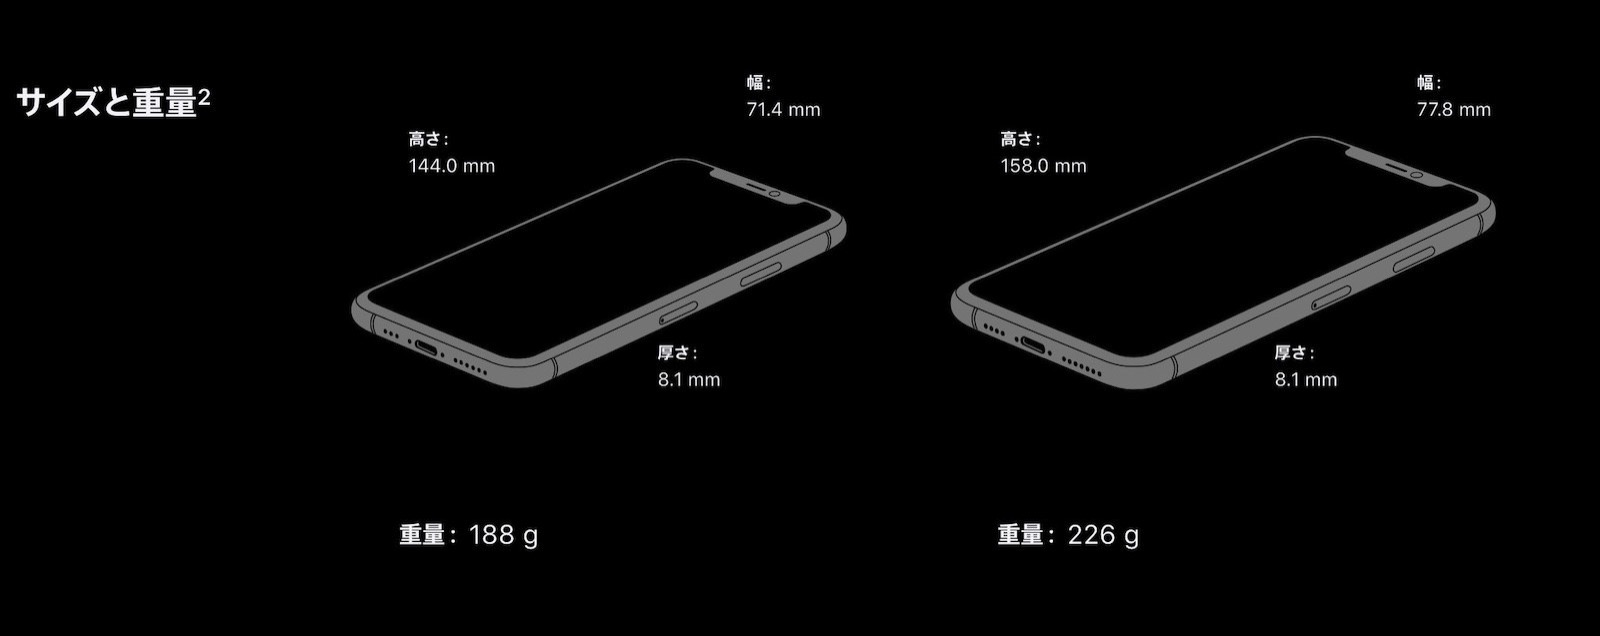 Iphone 11 pro max weight